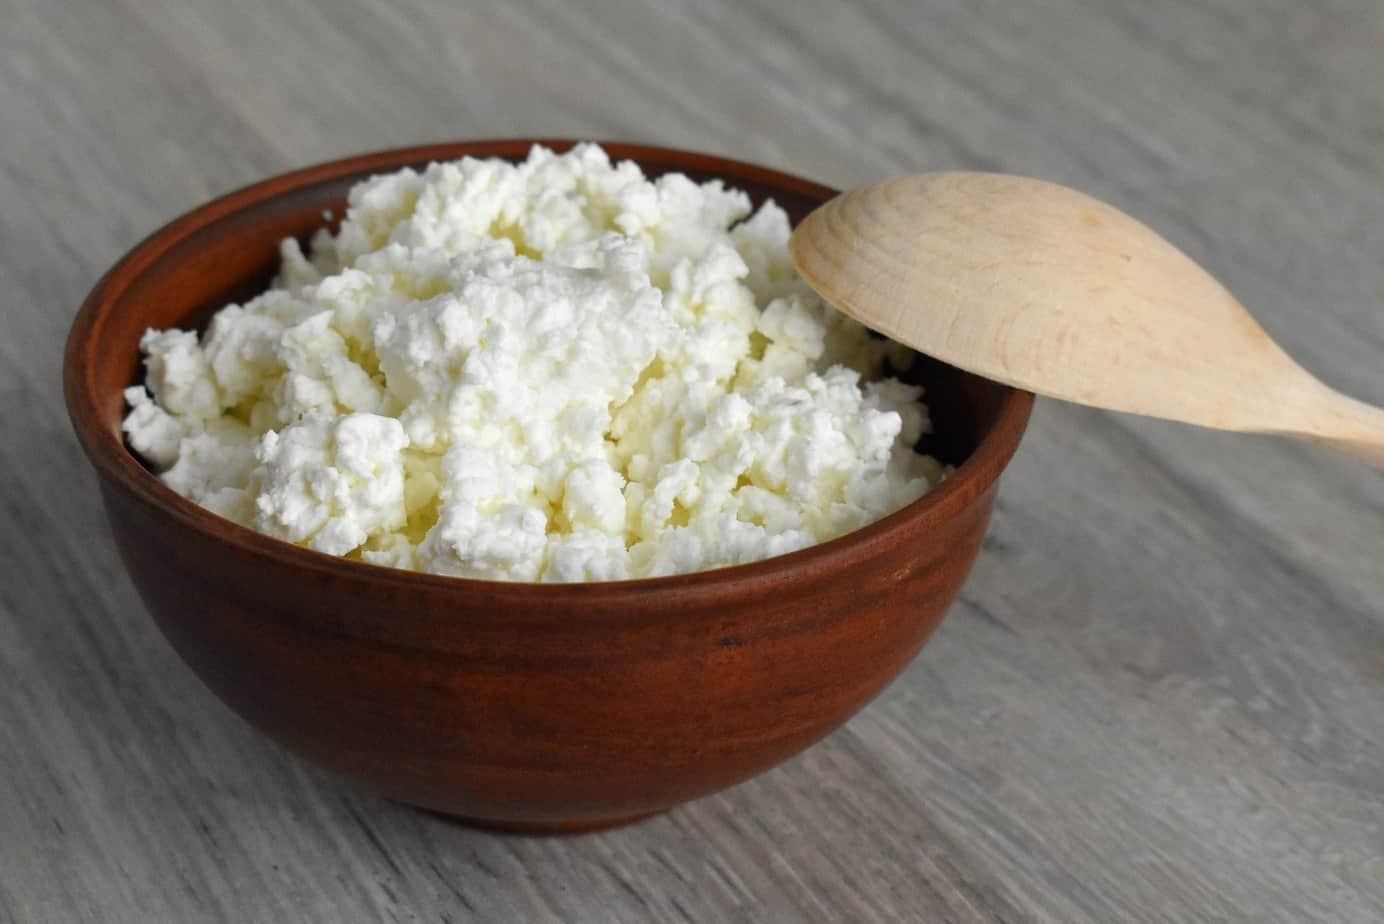 Bowl of cottage cheese with a wooden spoon.